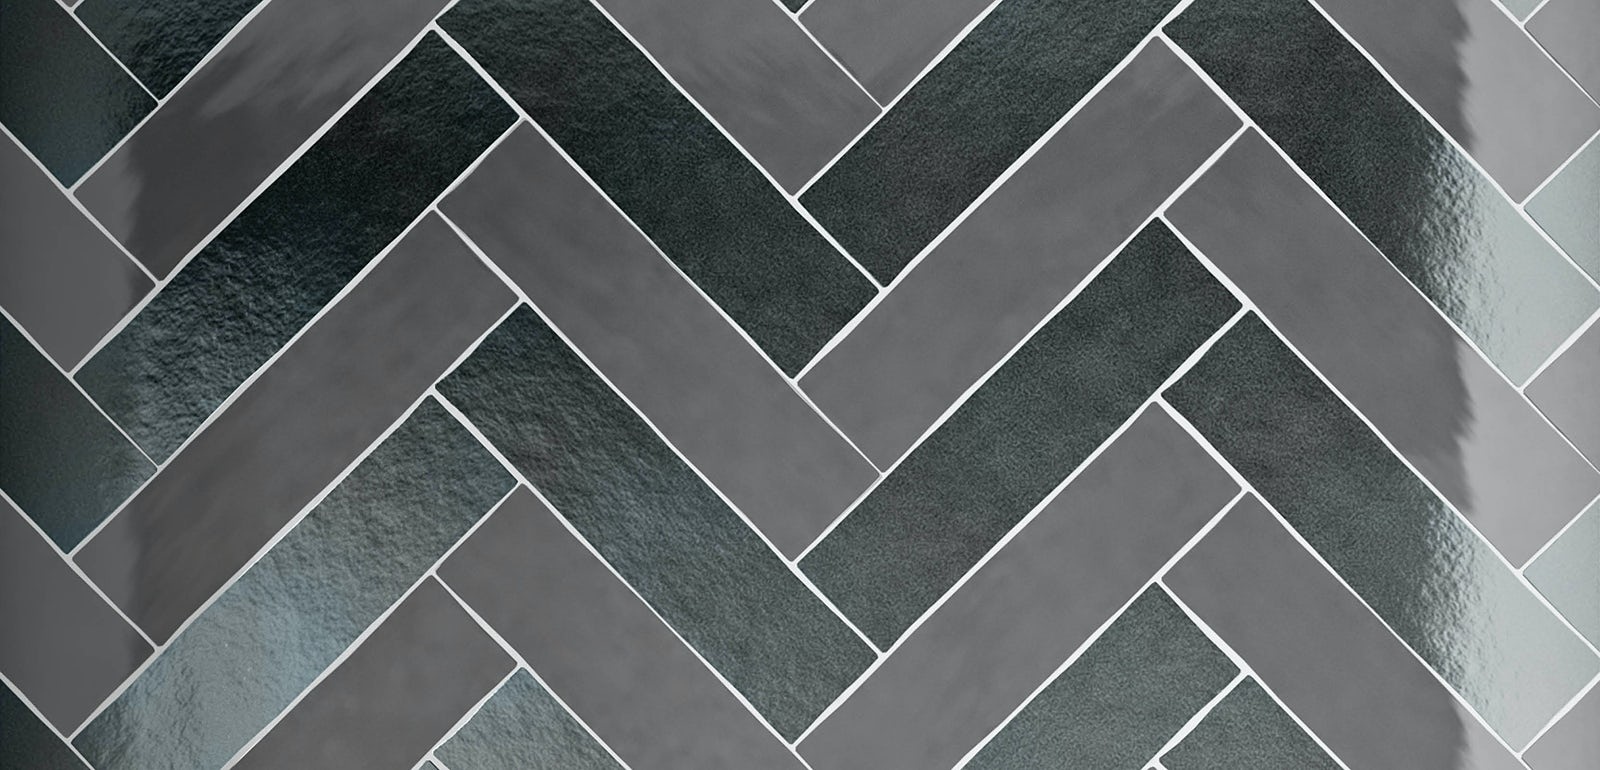 Bathroom Tiles Victoria Bc bathroom tiles ideas | victoriaplum